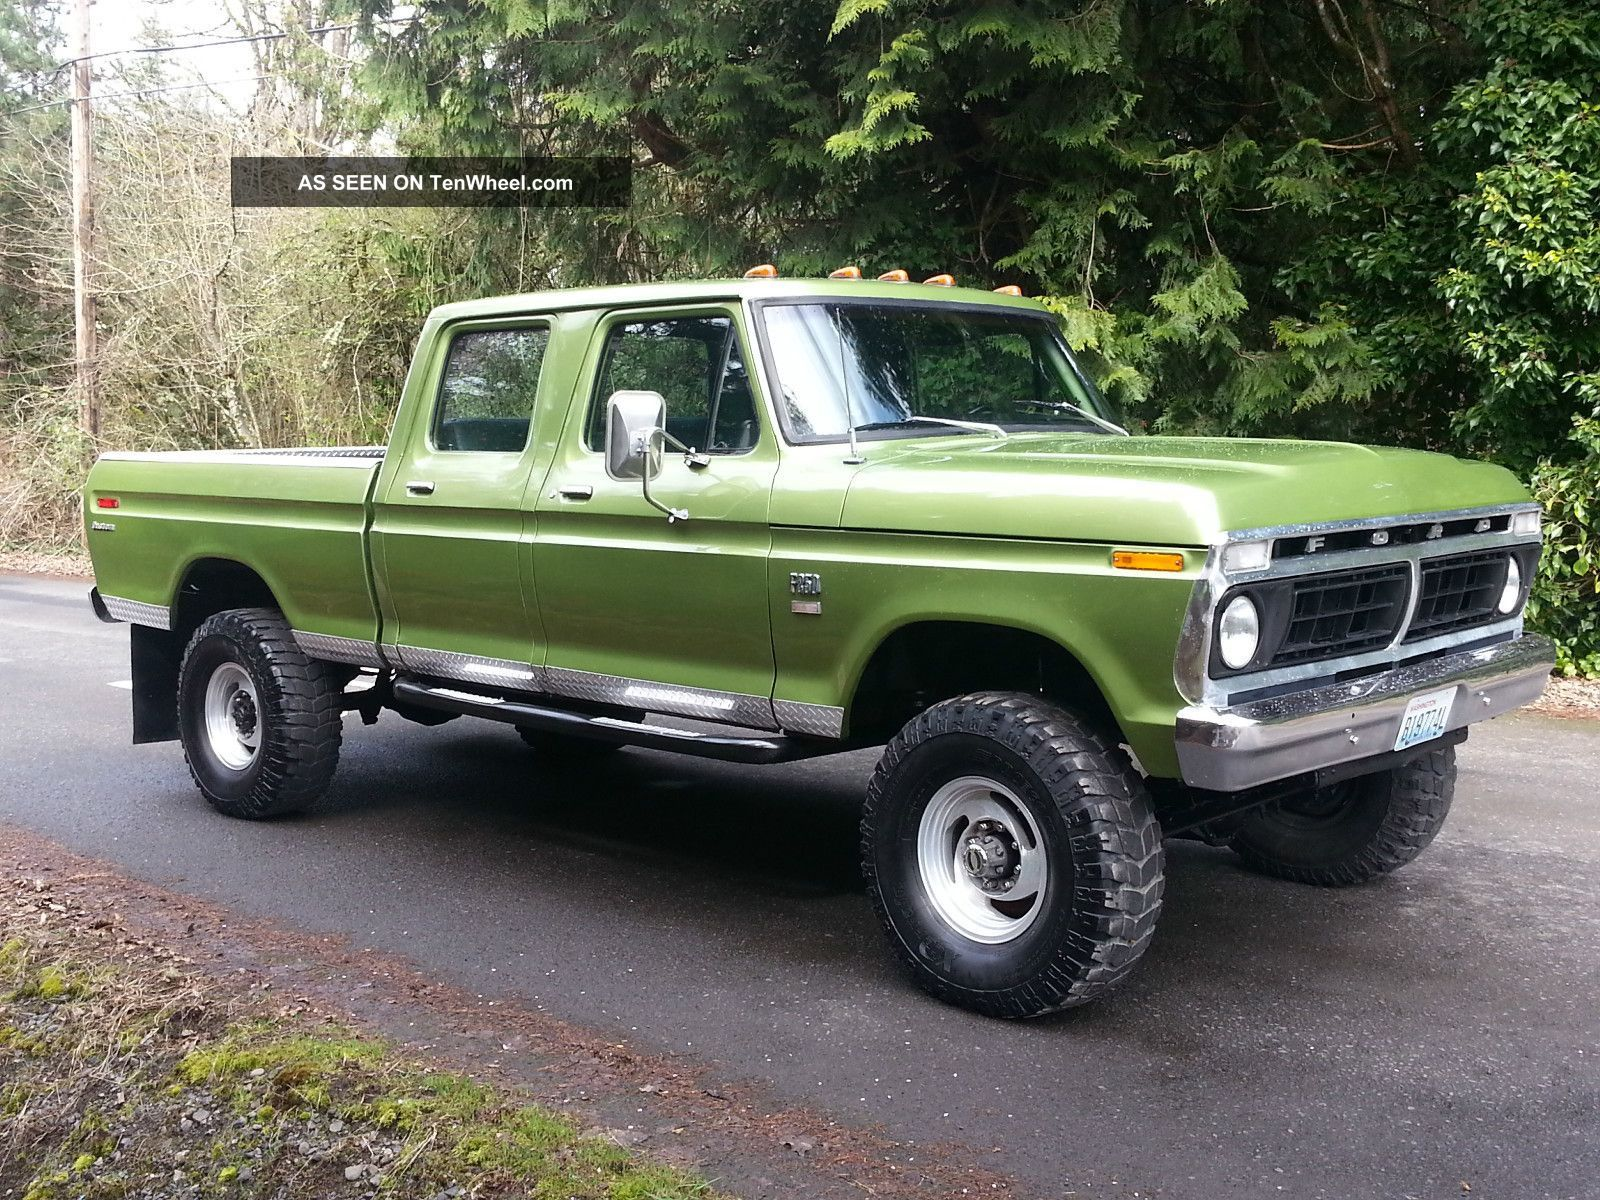 1973 Ford F250 Highboy Crew Cab 1974 Ford 4x4 Crew Cab High Boy